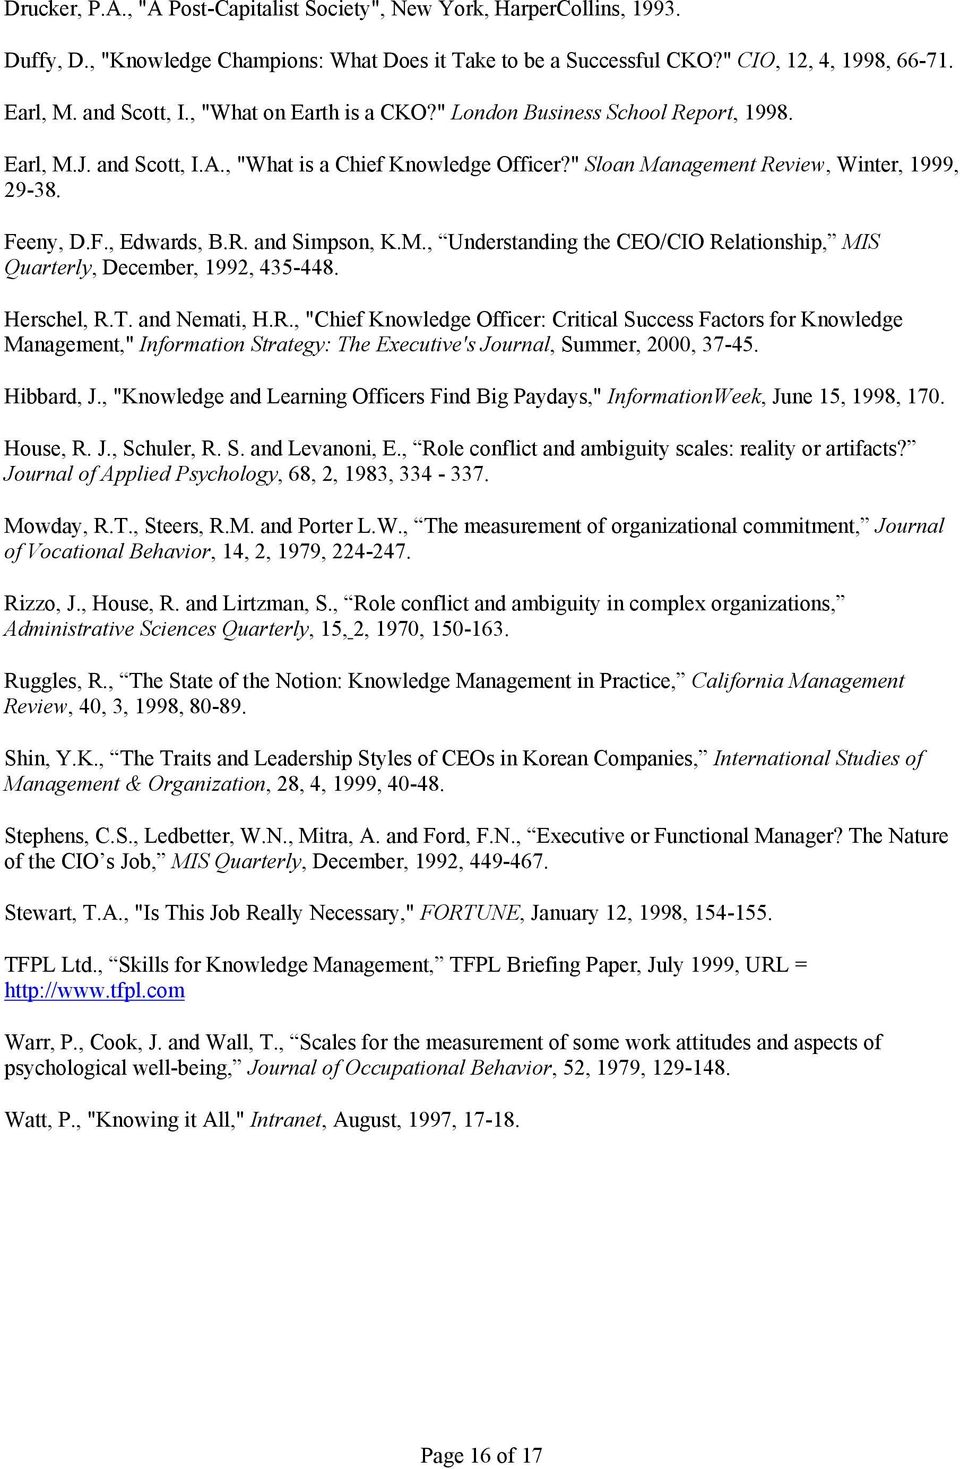 "R. and Simpson, K.M., Understanding the CEO/CIO Relationship, MIS Quarterly, December, 1992, 435-448. Herschel, R.T. and Nemati, H.R., ""Chief Knowledge Officer: Critical Success Factors for Knowledge Management,"" Information Strategy: The Executive's Journal, Summer, 2000, 37-45."